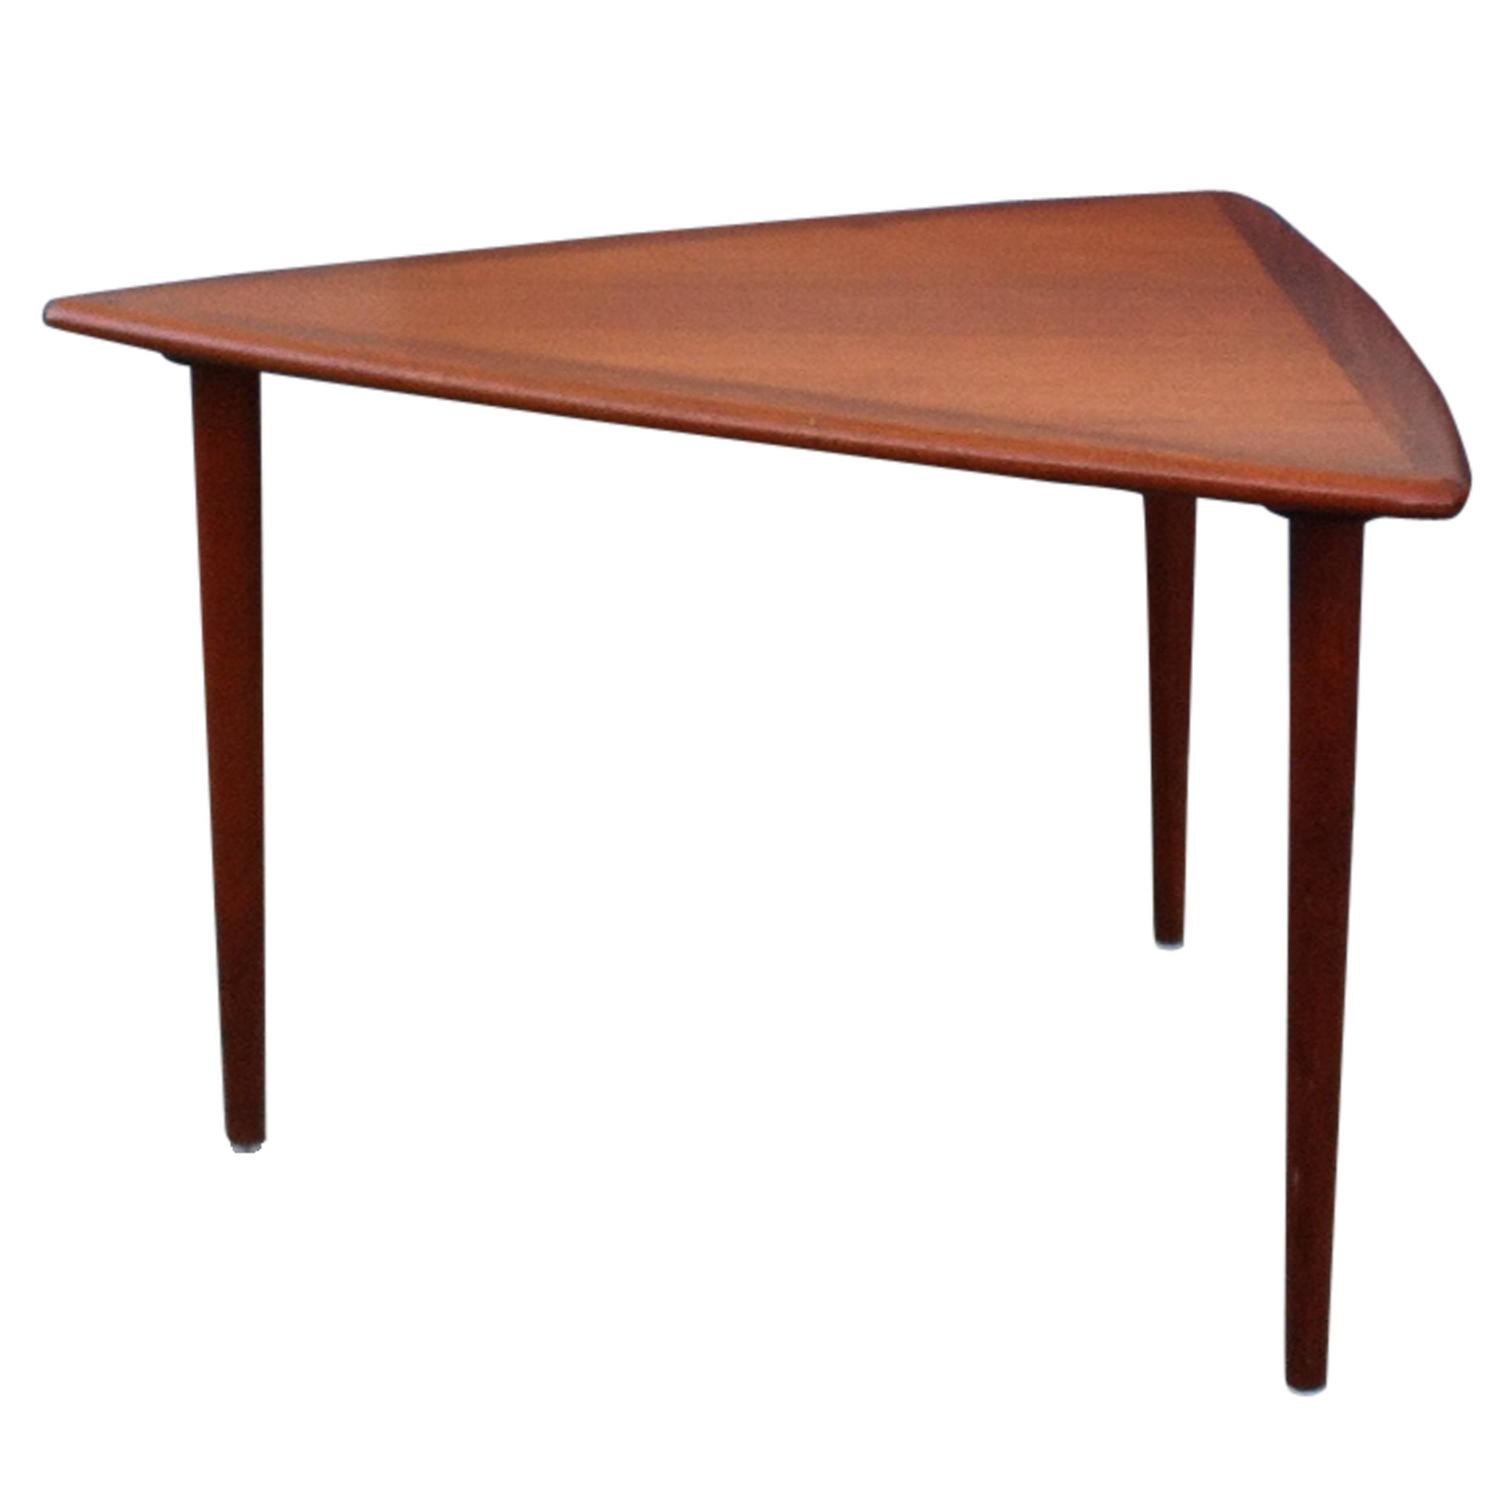 Small Modern Coffee Table 1960s For Sale At 1stdibs: Triangular Shaped Danish Modern 1960s Coffee Table With